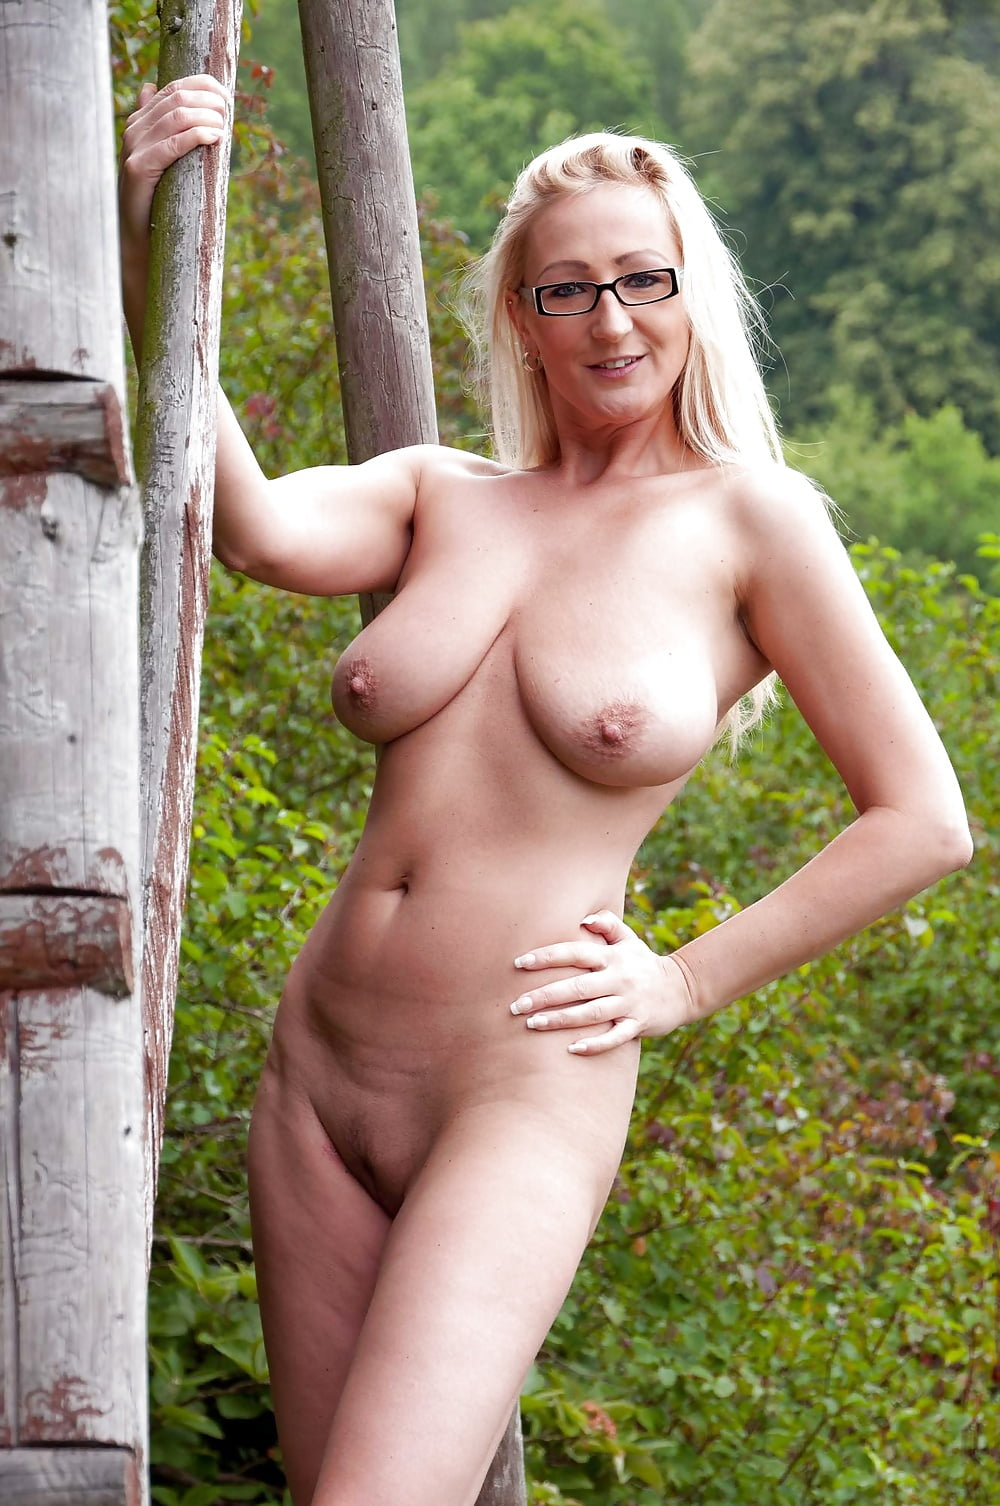 mil-nude-german-call-girl-photos-research